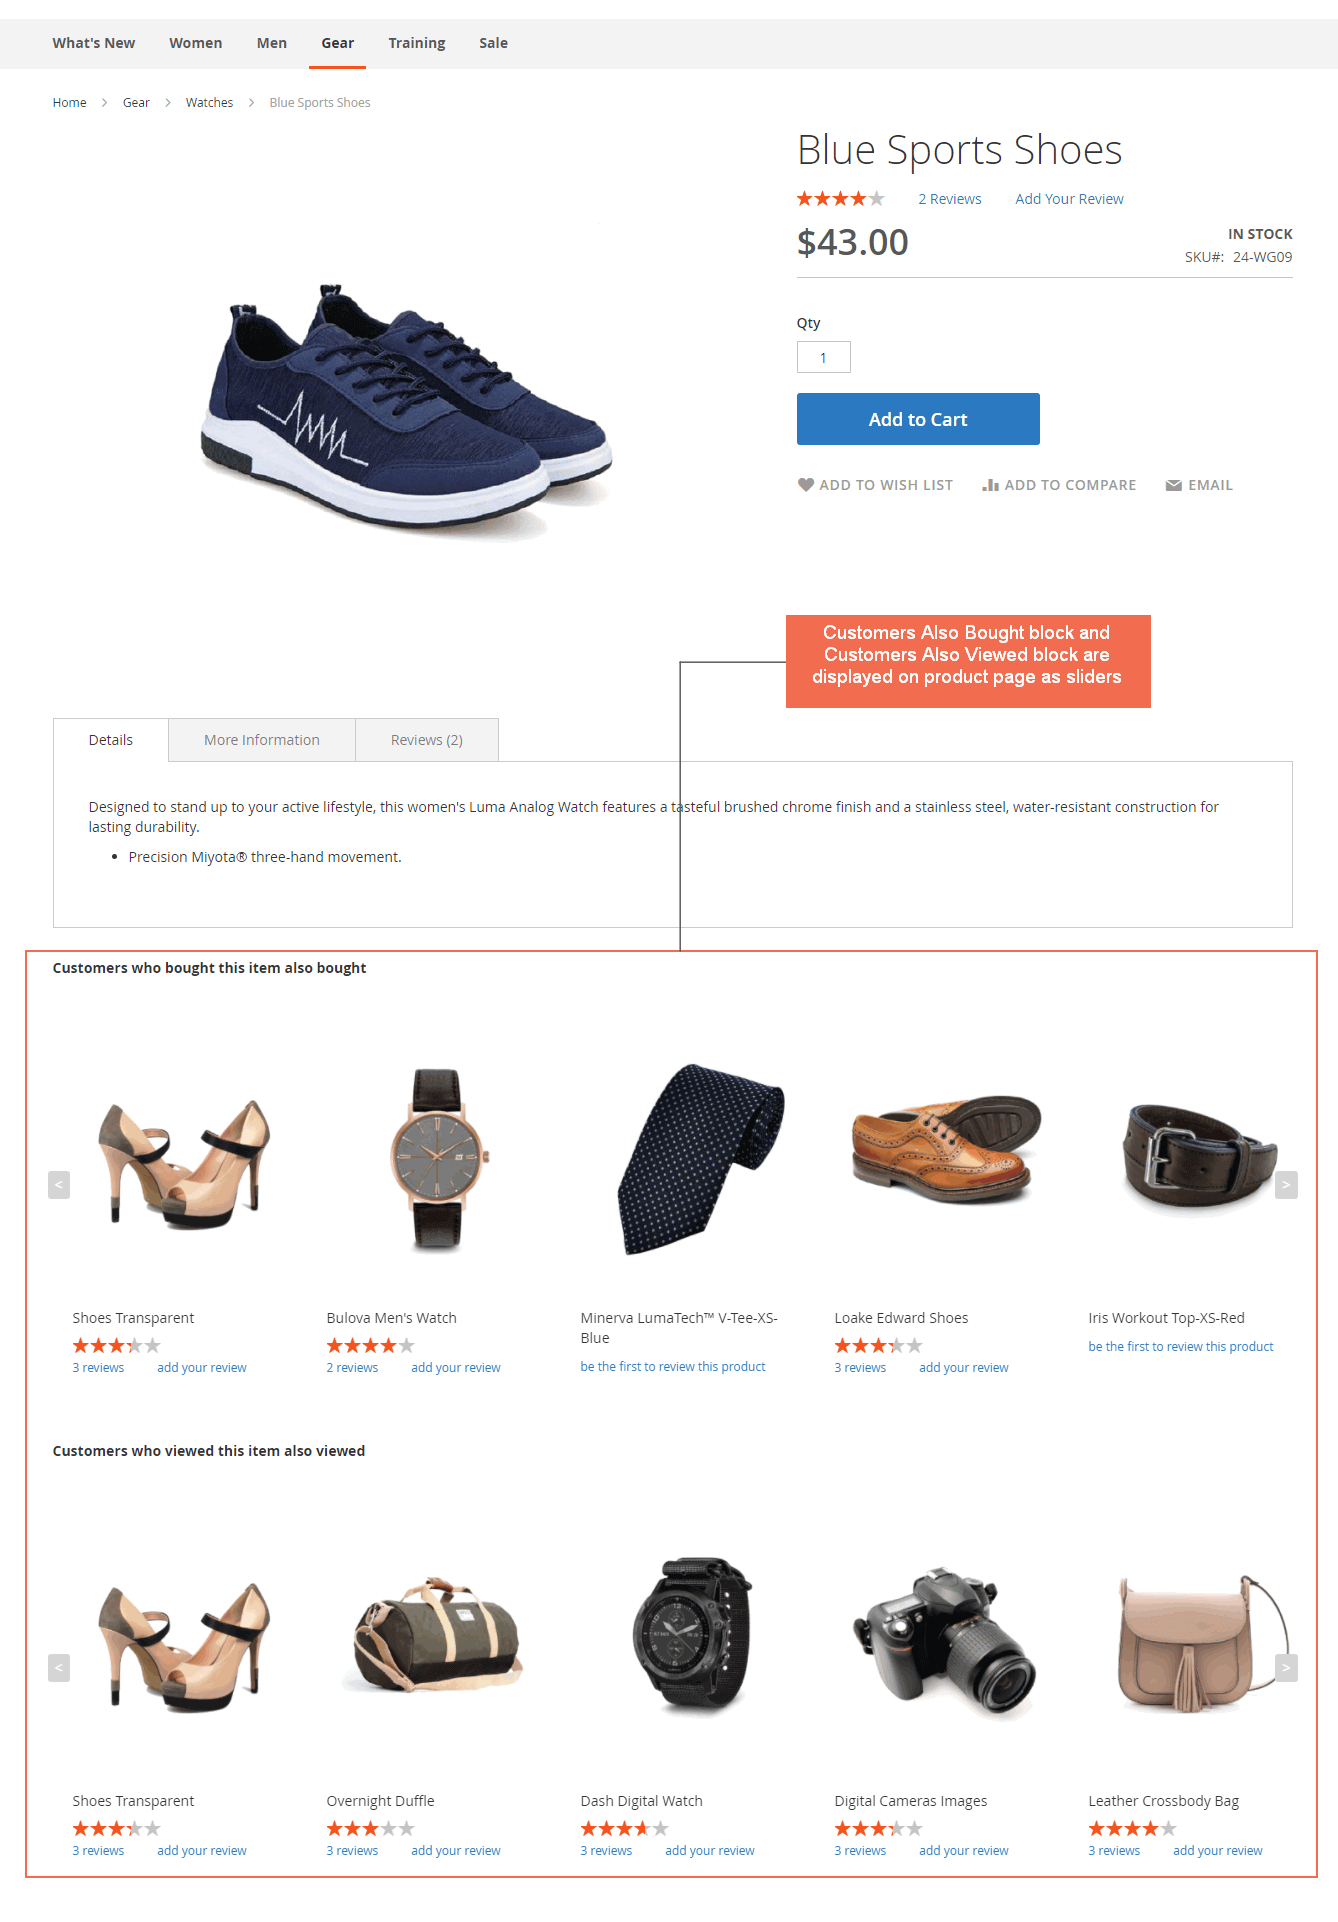 Customers Also Bought and Also Viewed block on the Magento 2 product page